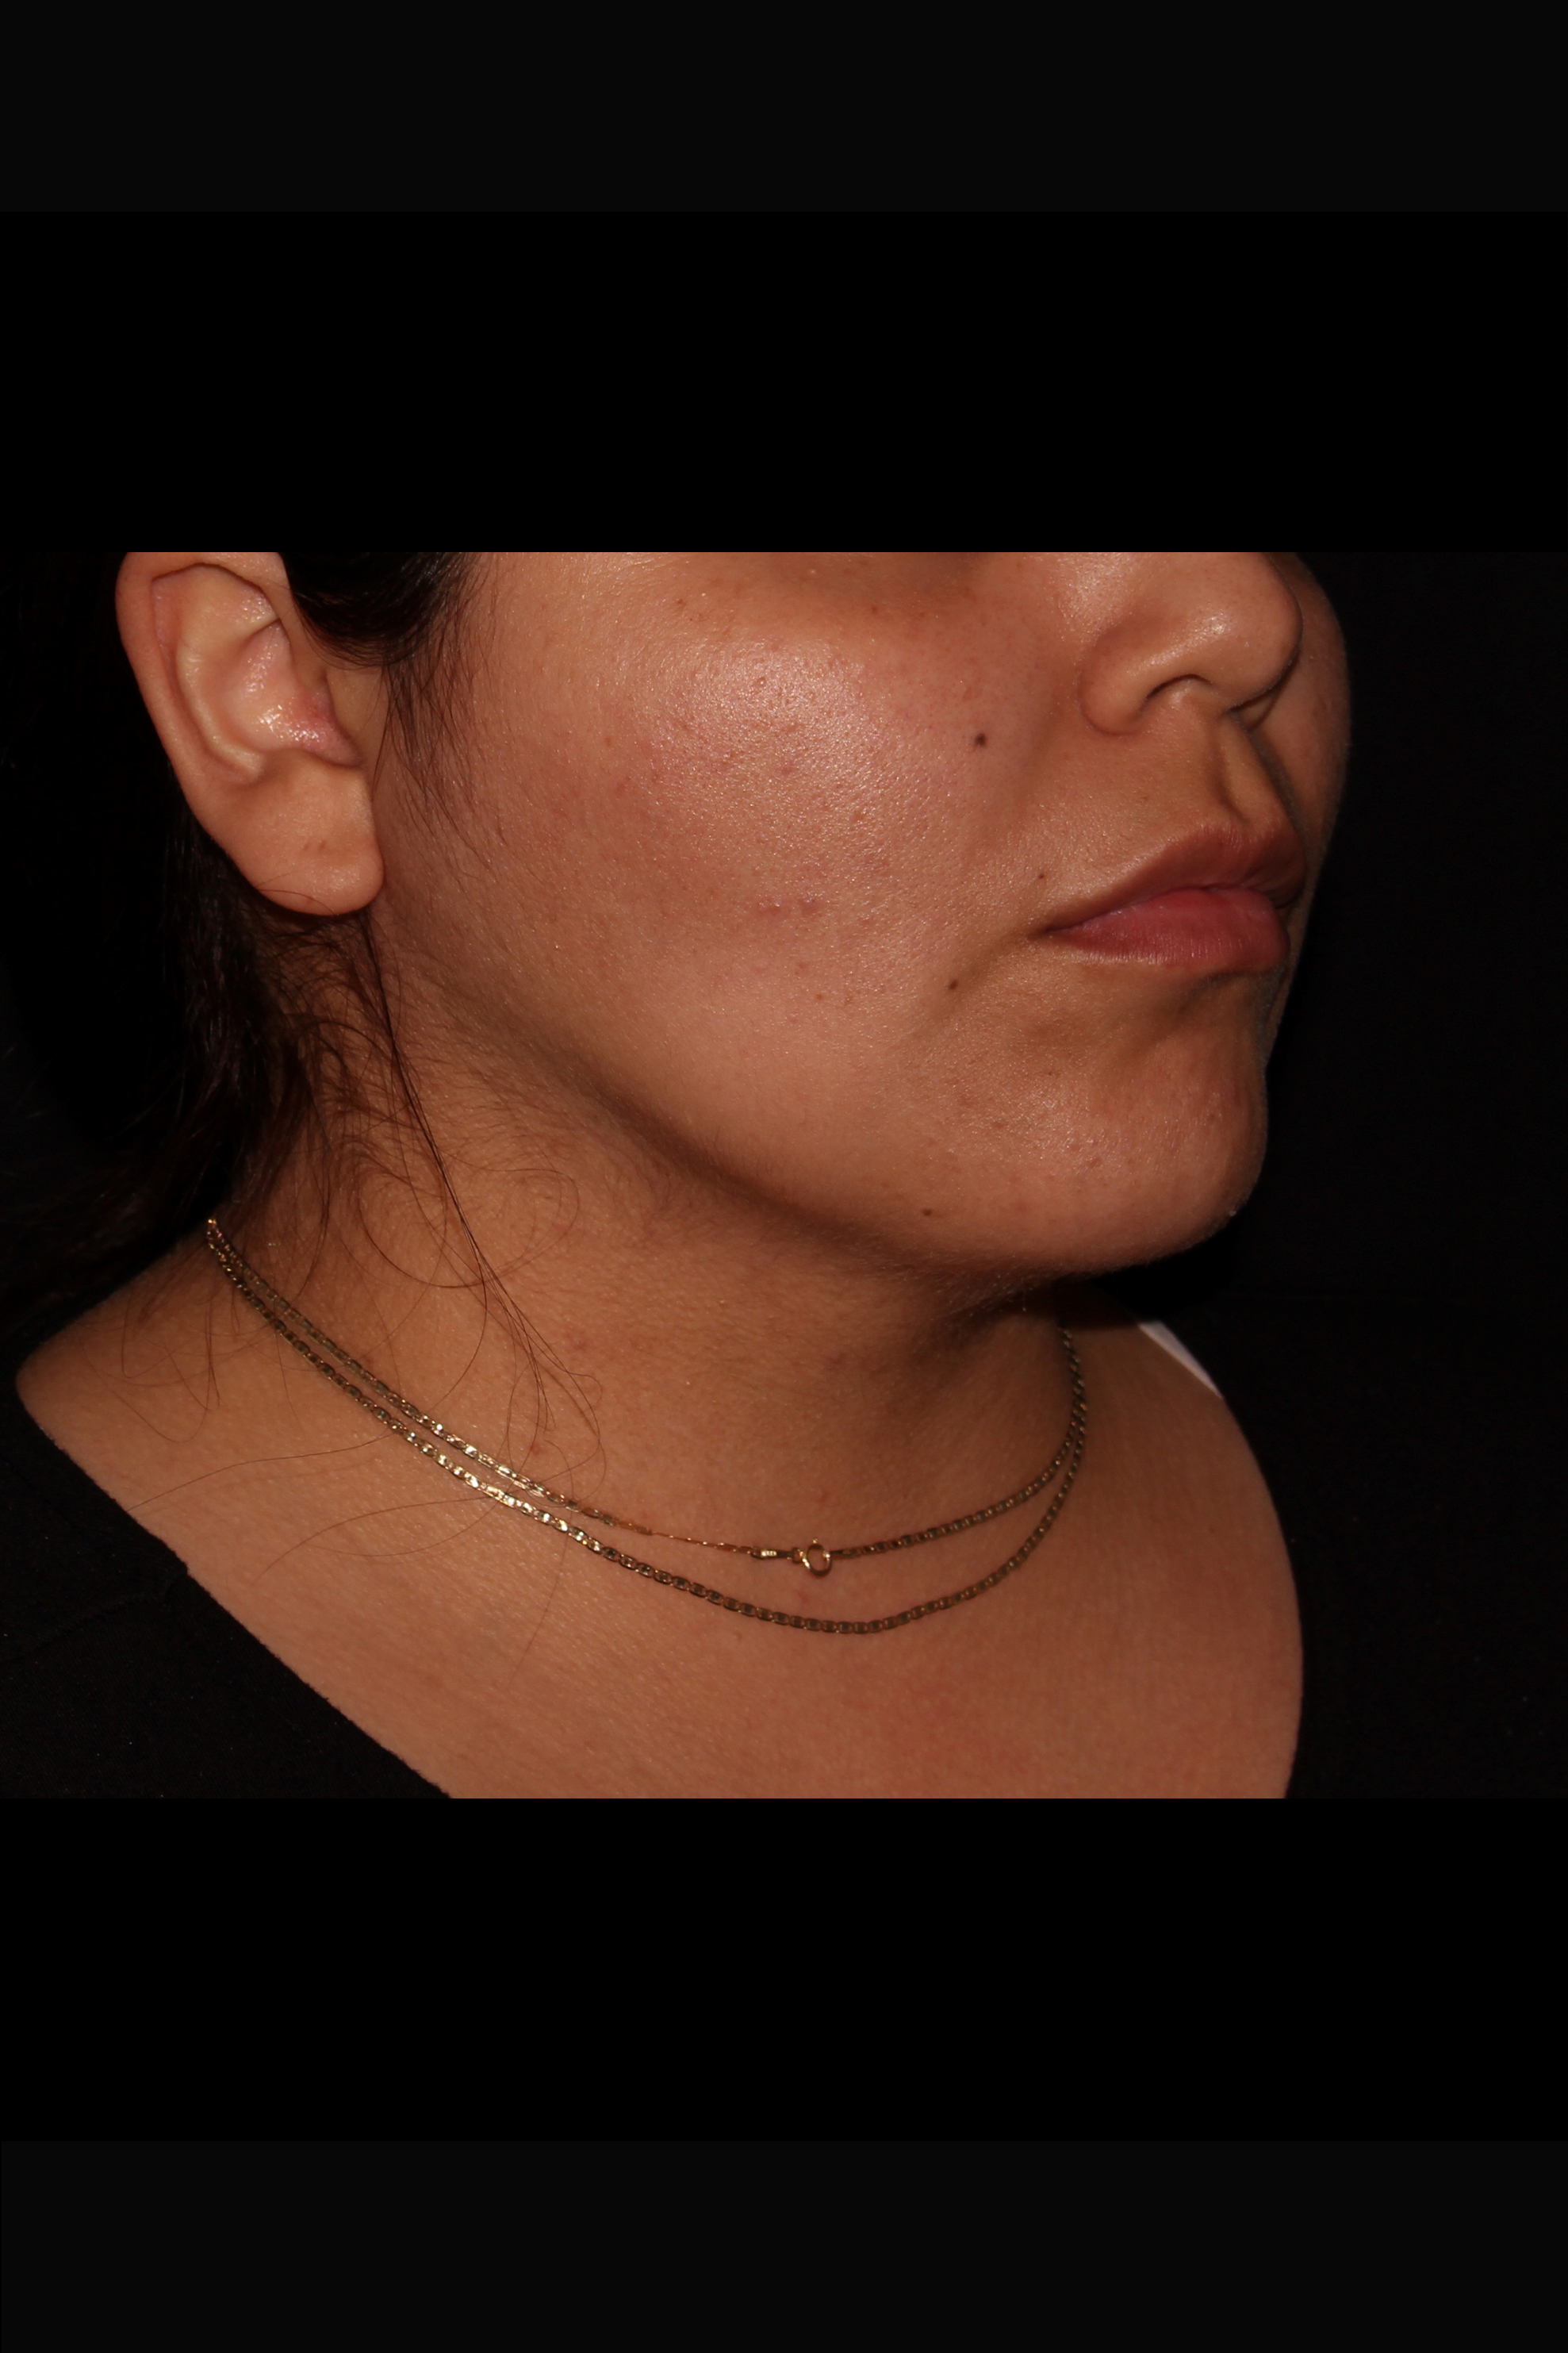 After Neck Liposuction - Oblique